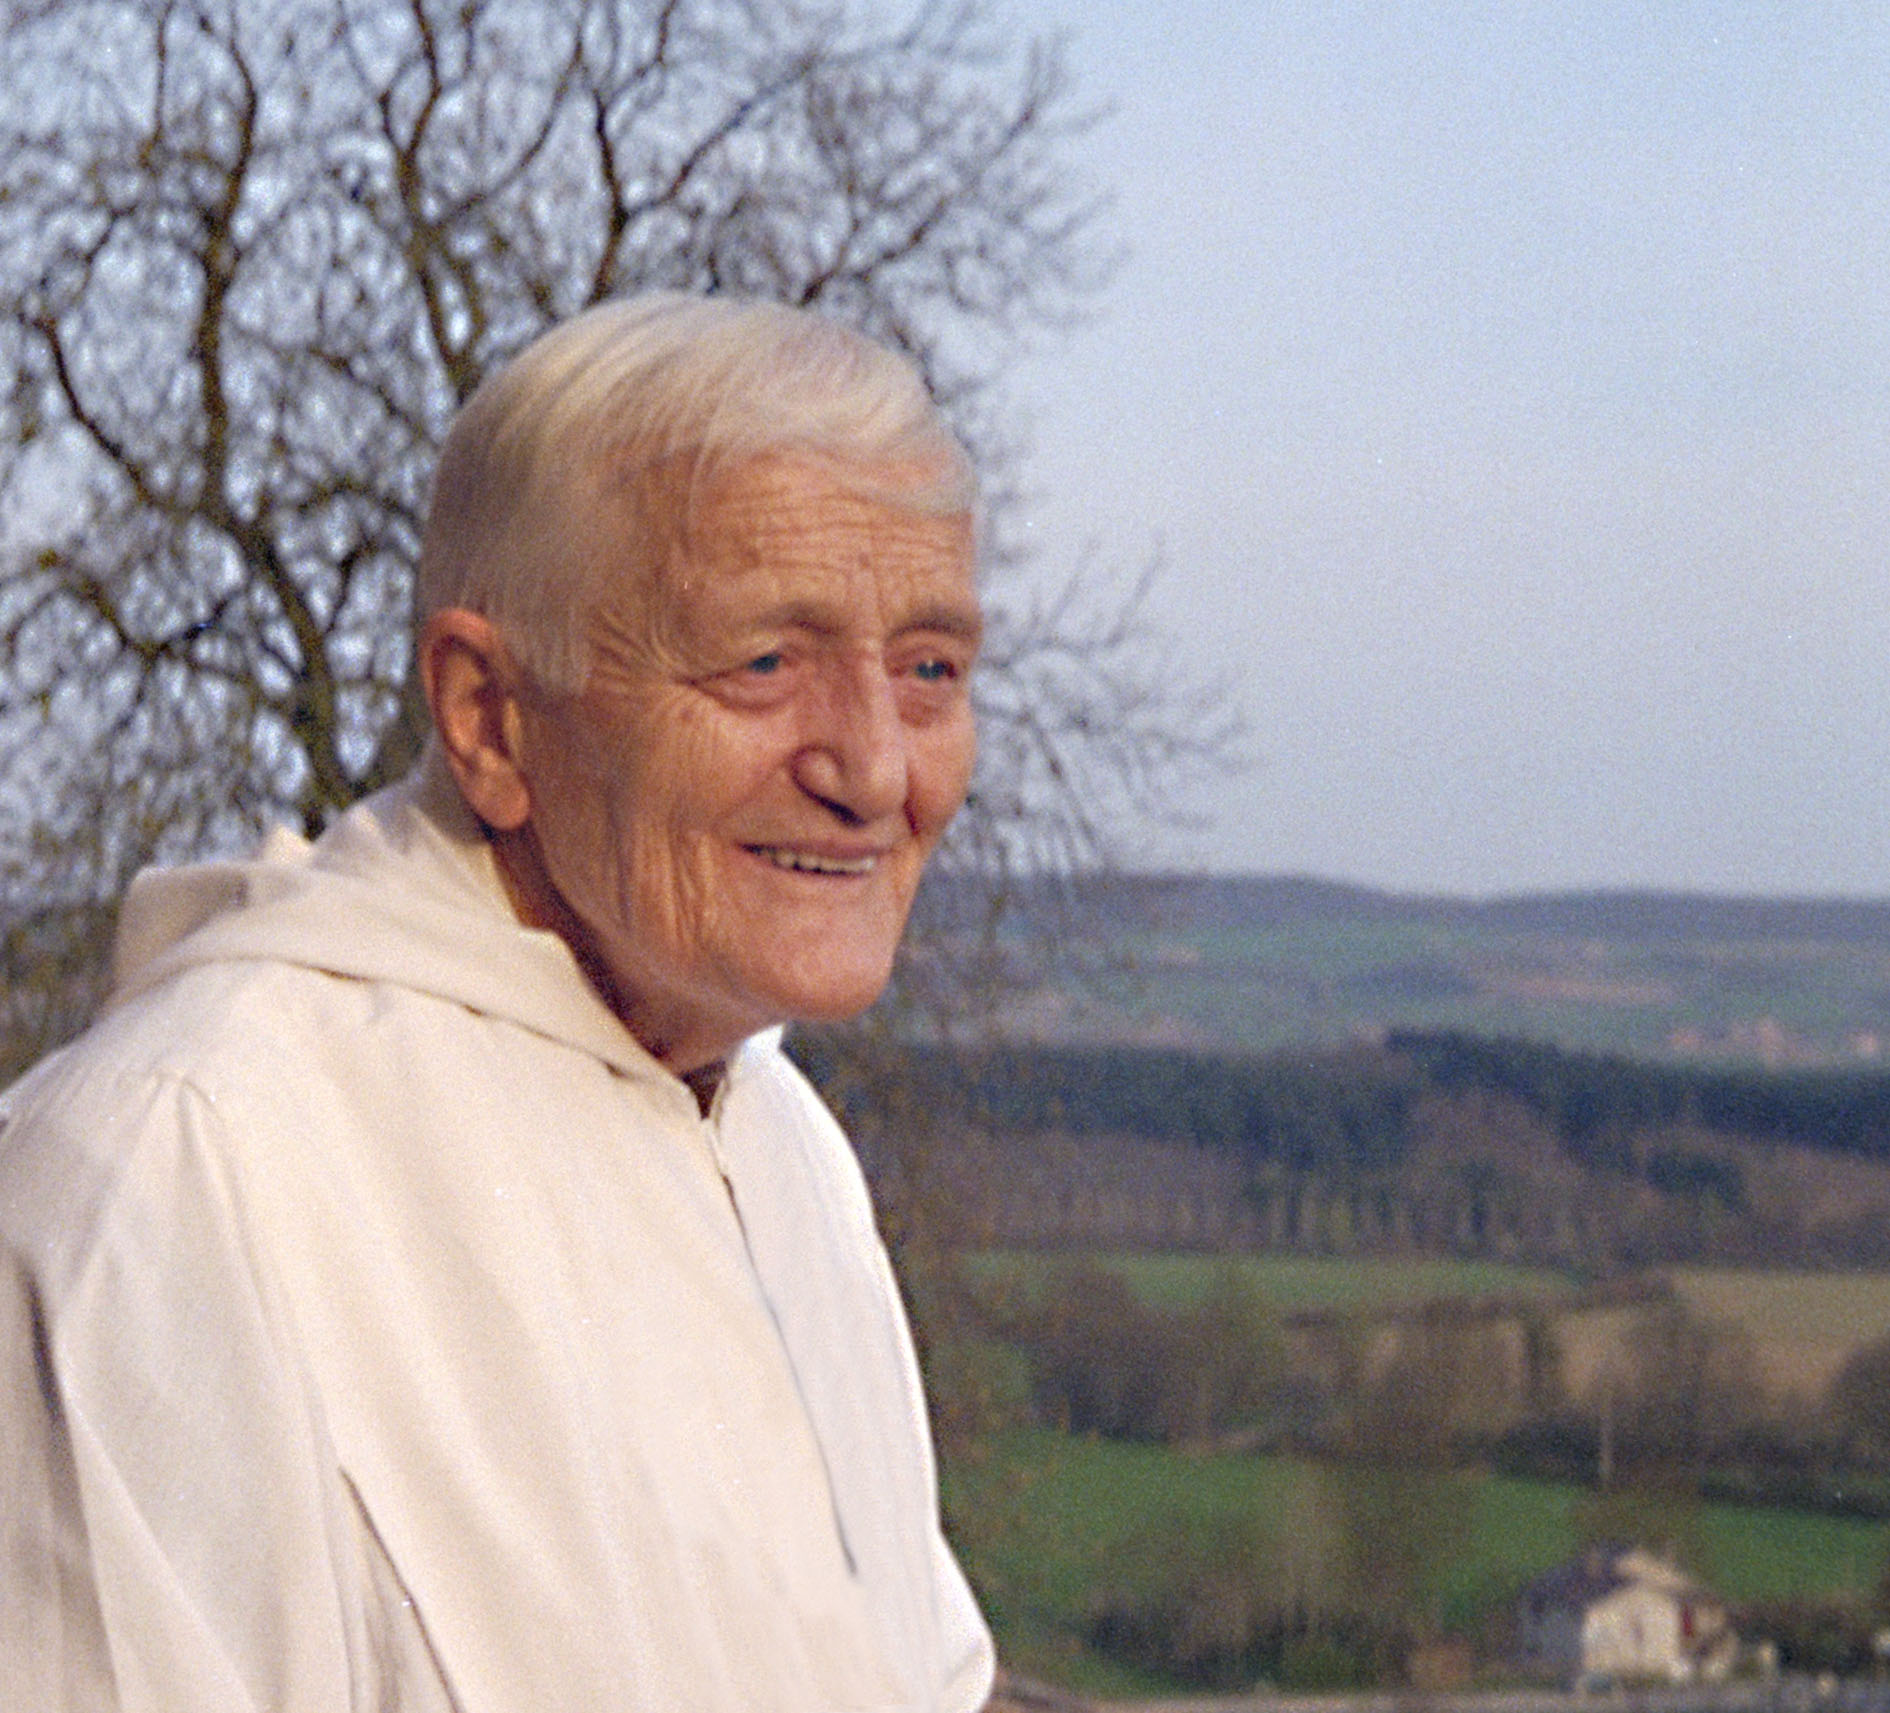 Frère Roger, 2006